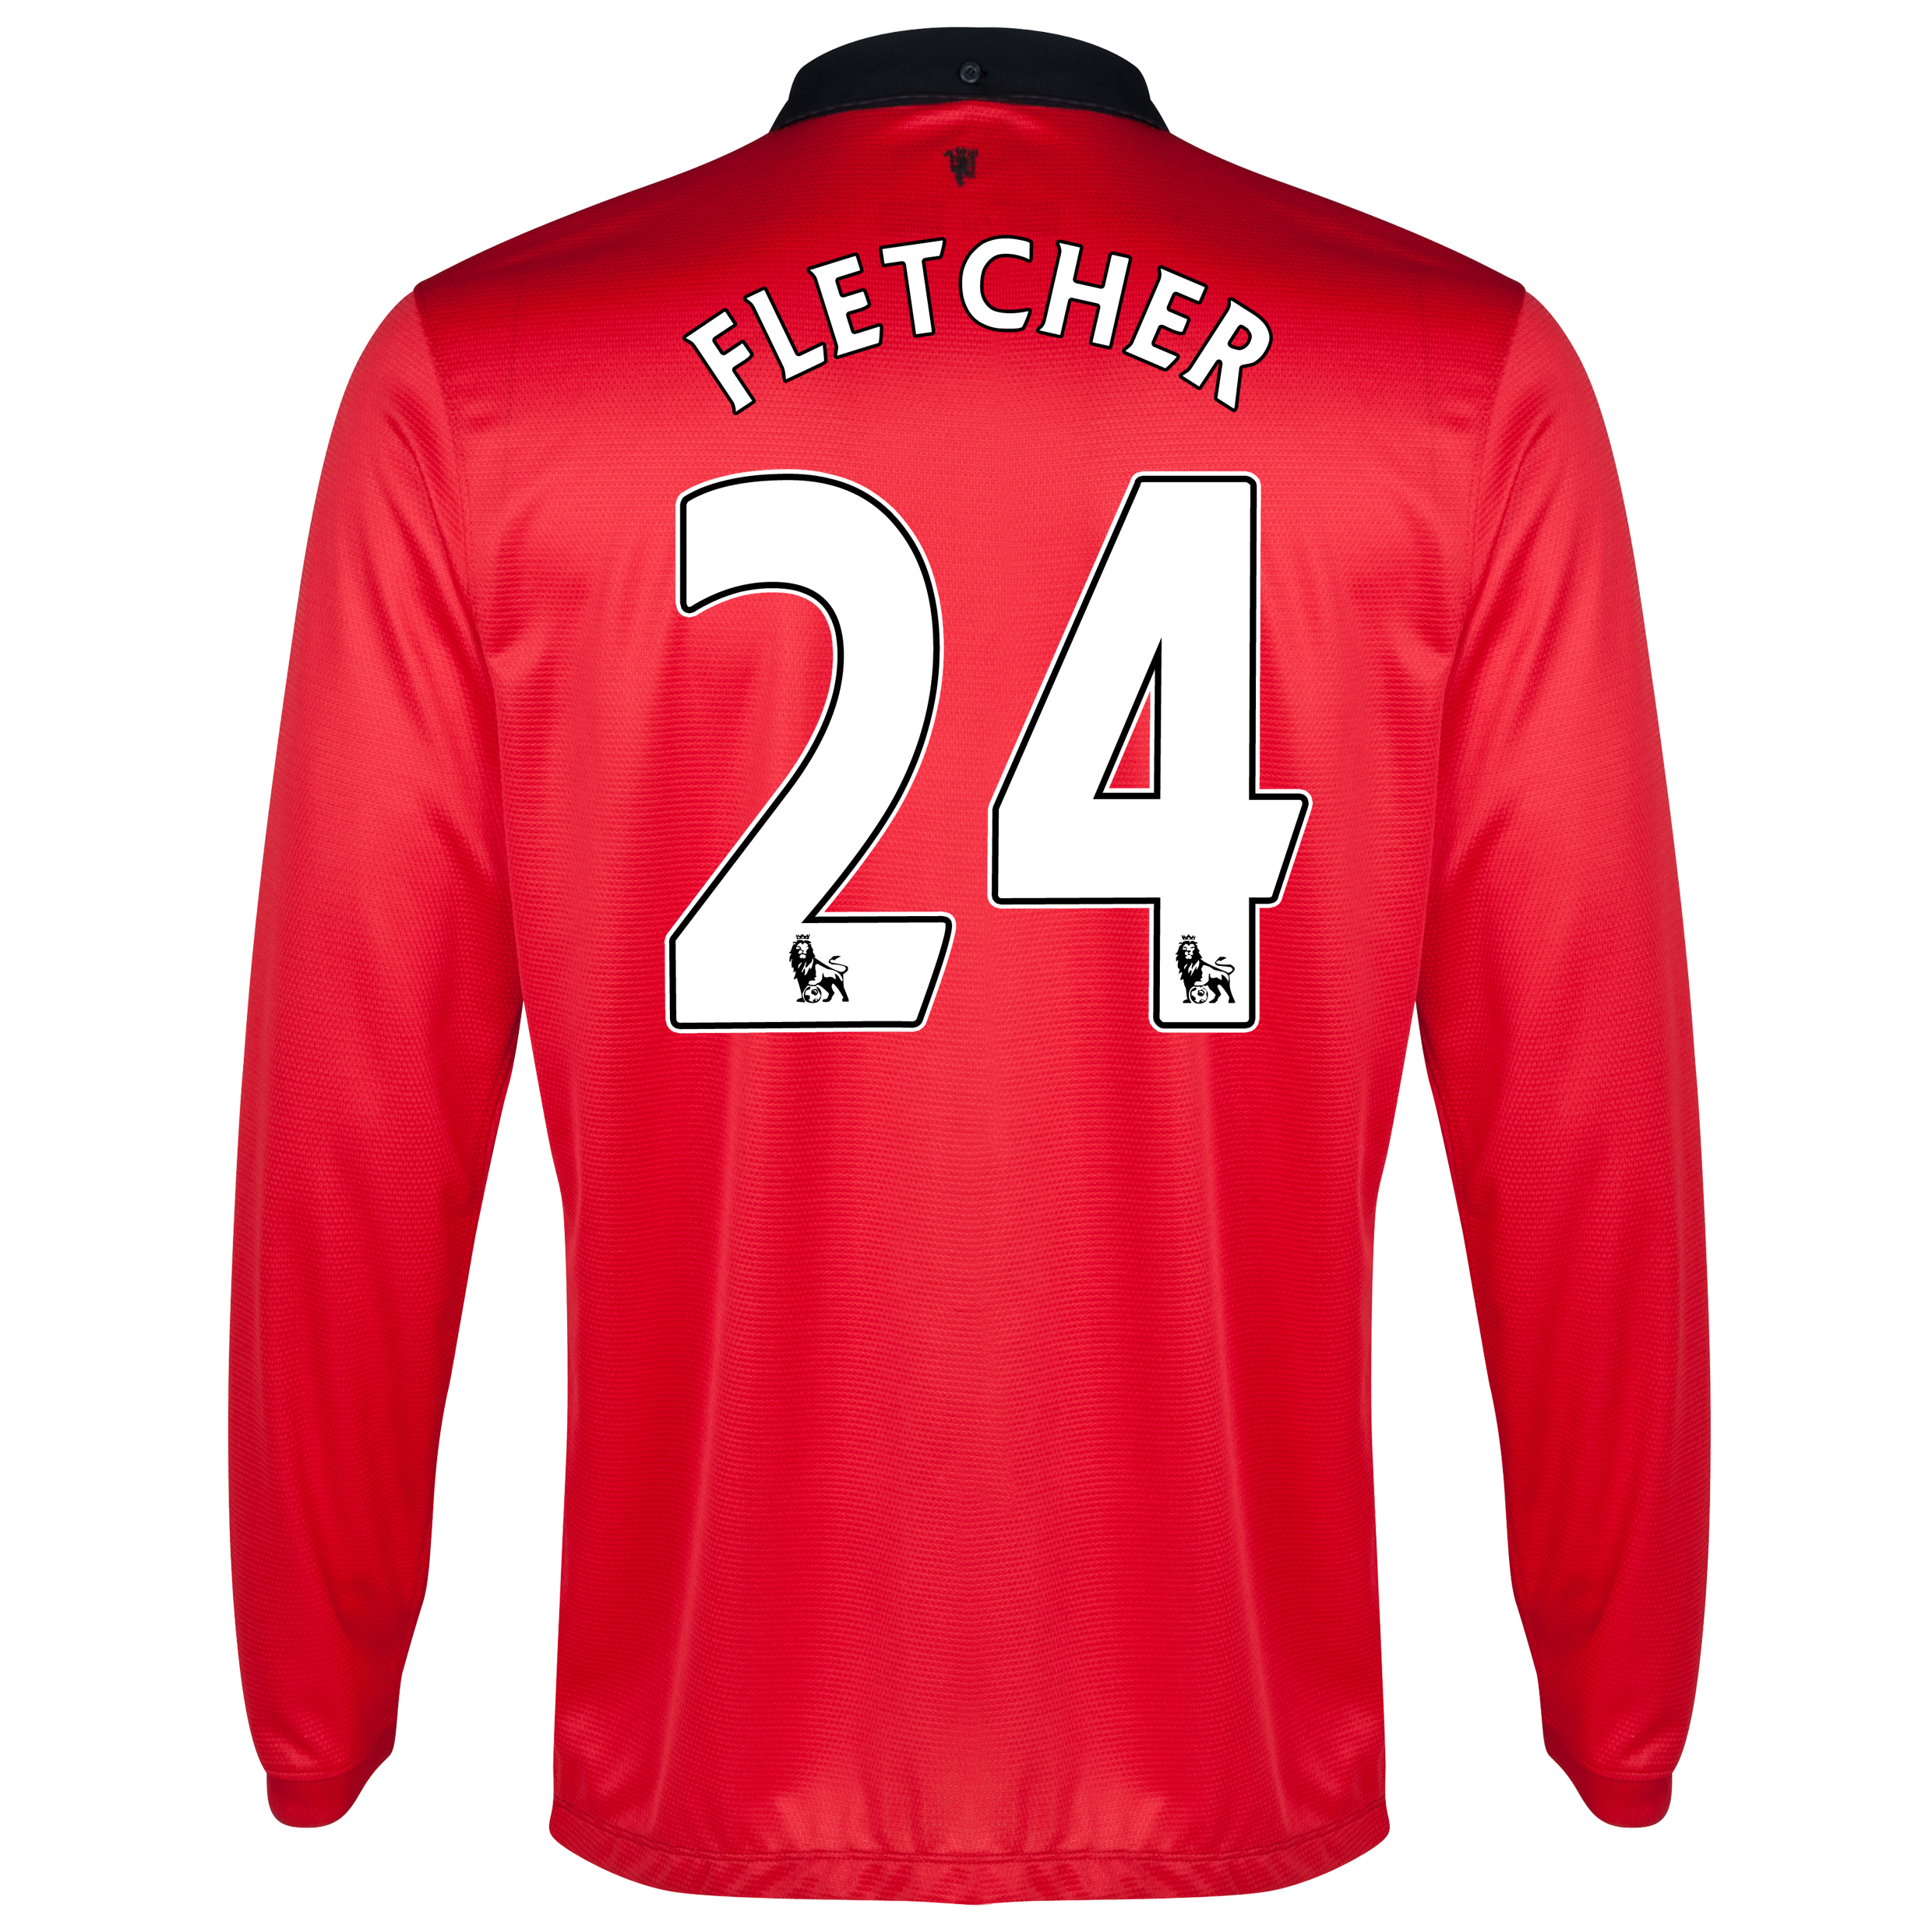 Manchester United Home Shirt 2013/14 - Long Sleeved - Kids with Fletcher 24 printing